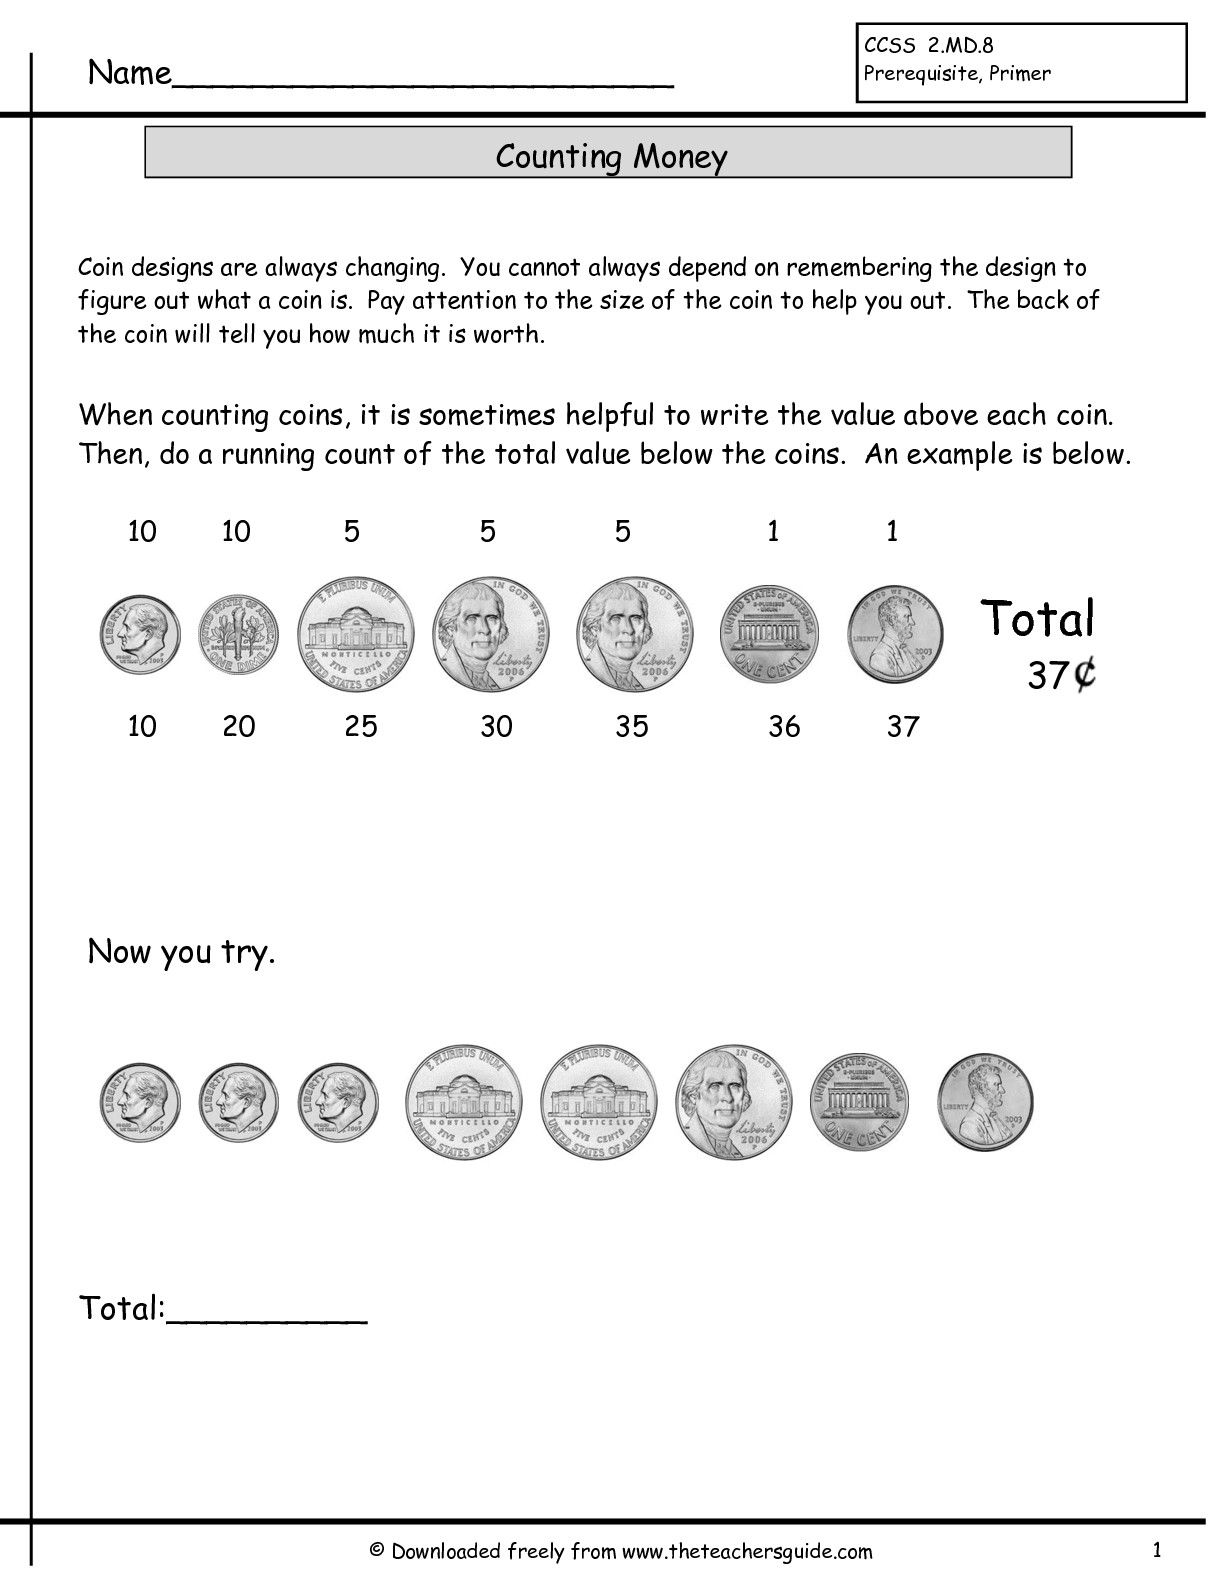 Counting Coins Worksheets From The Teacher S Guide Counting Coins Worksheet Counting Money Worksheets Money Worksheets